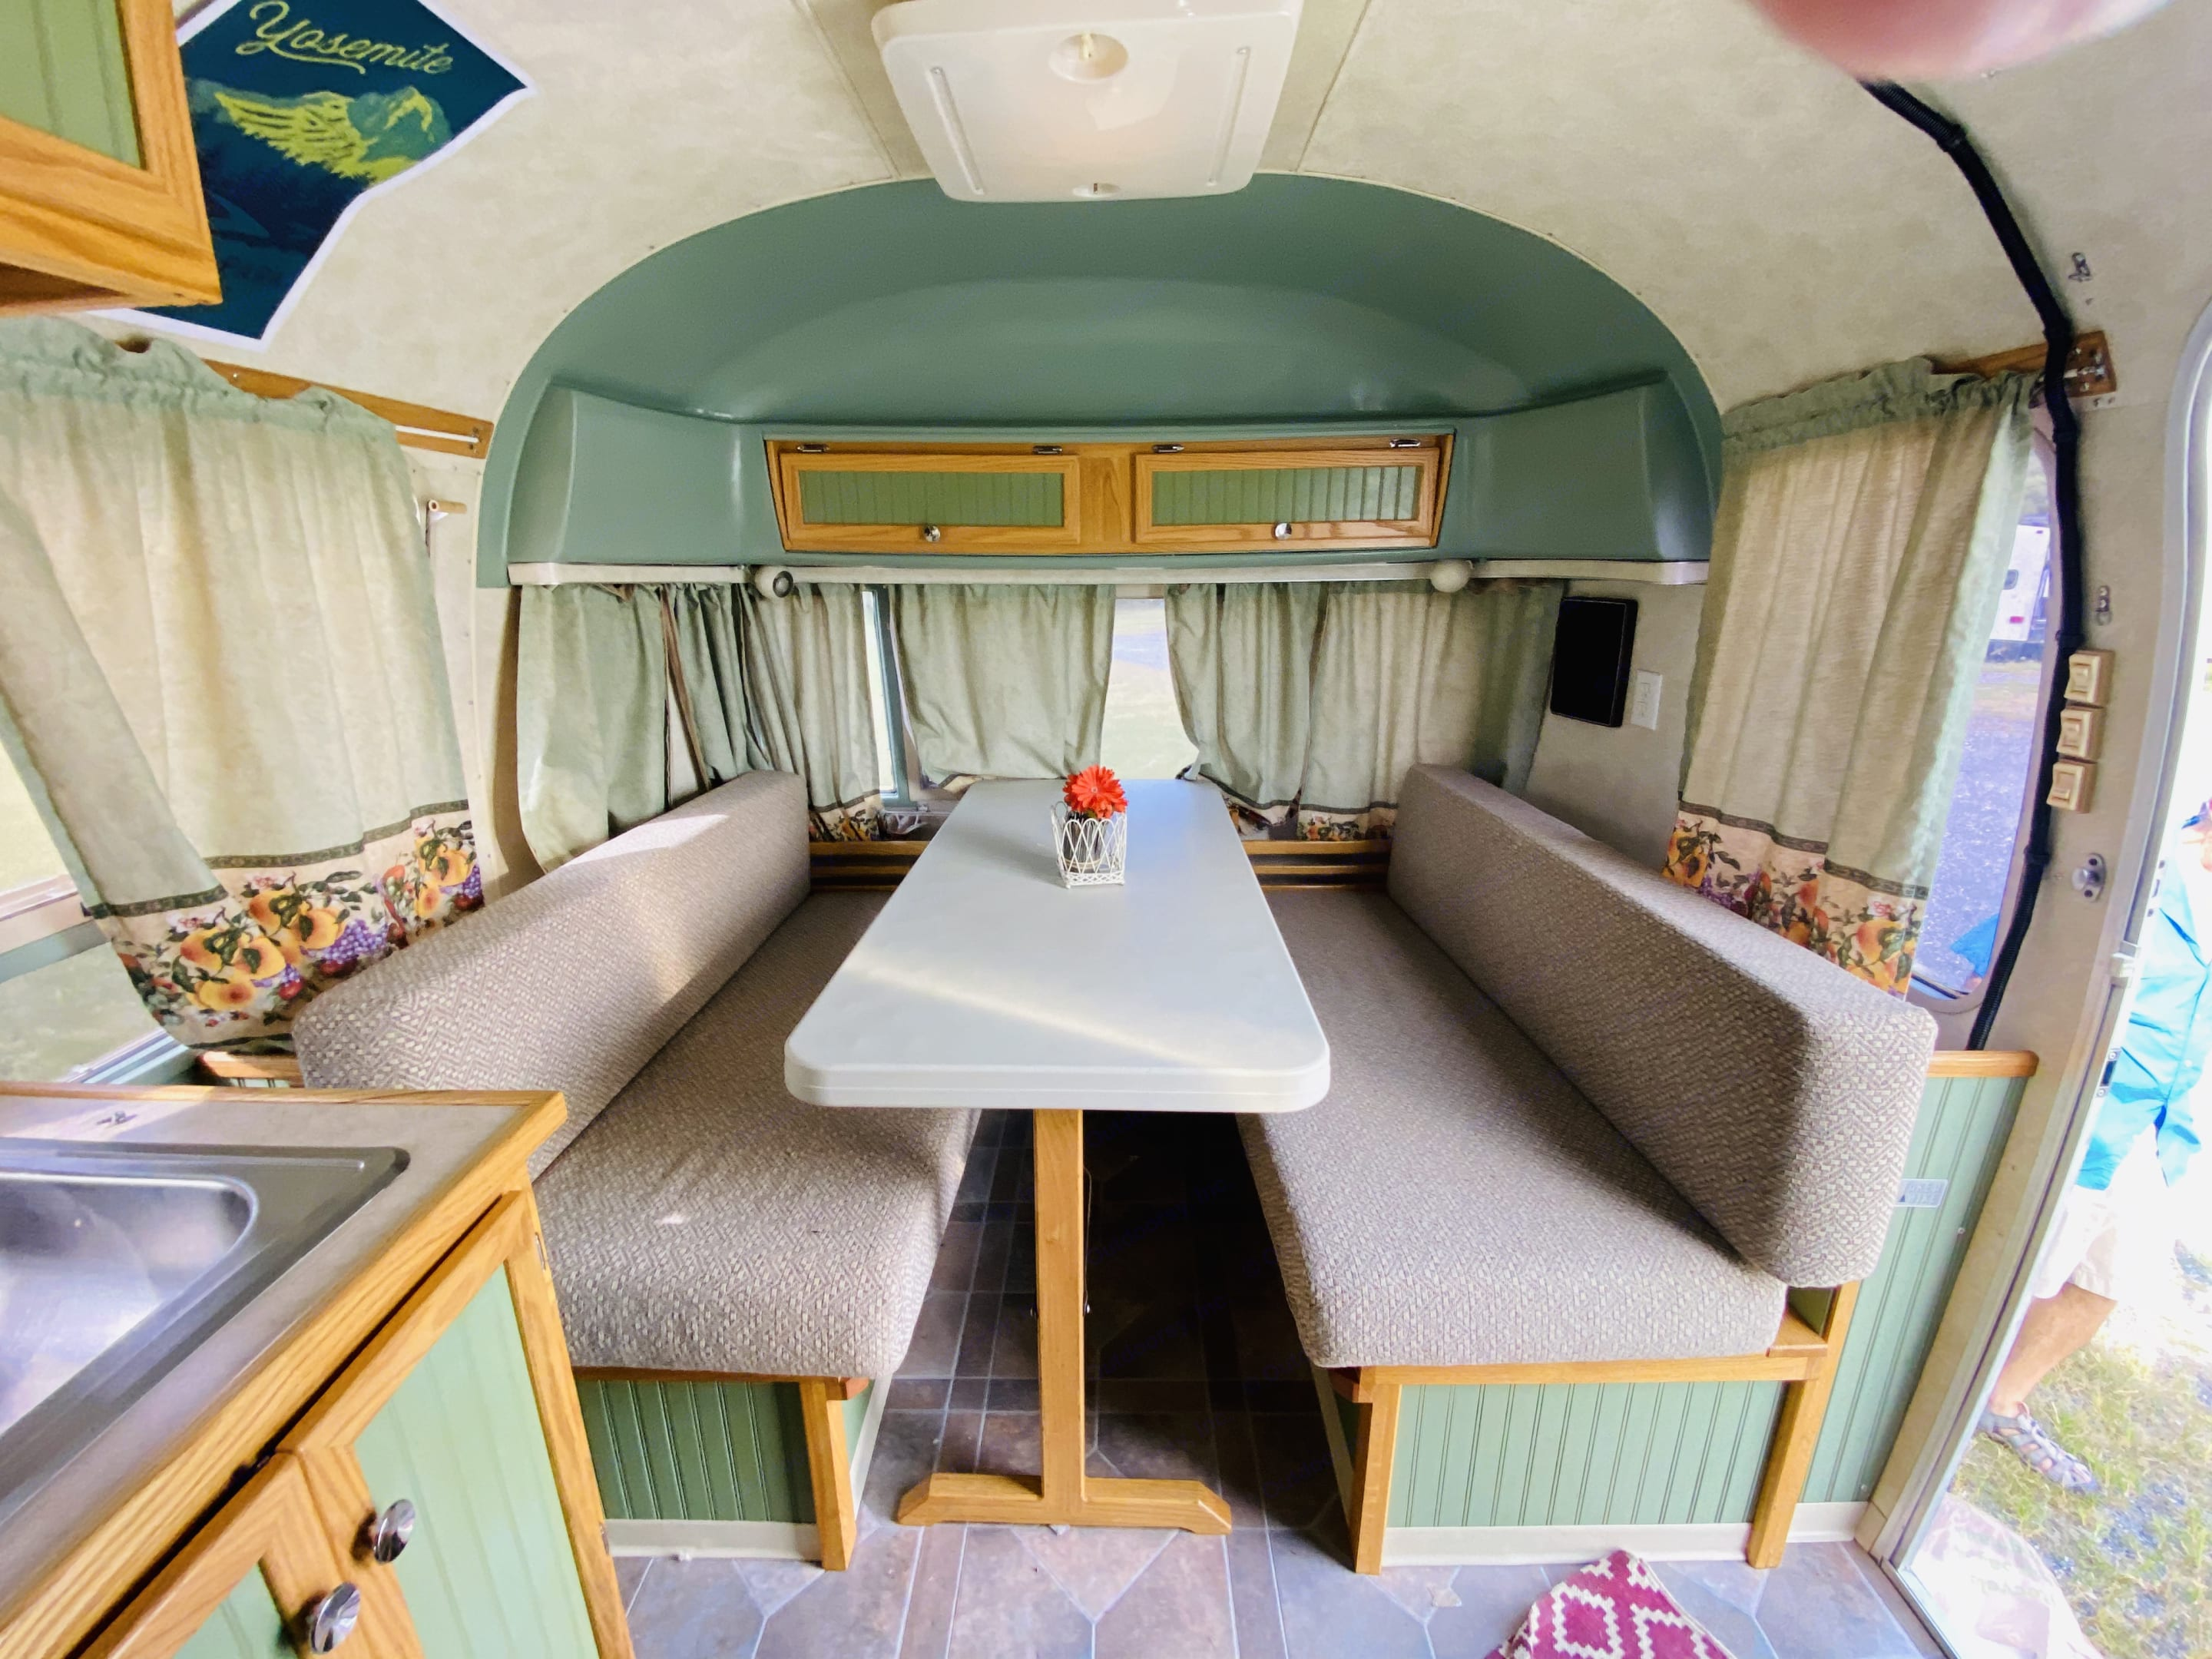 Dinette sleeps 2. Airstream Trade Winds 1979